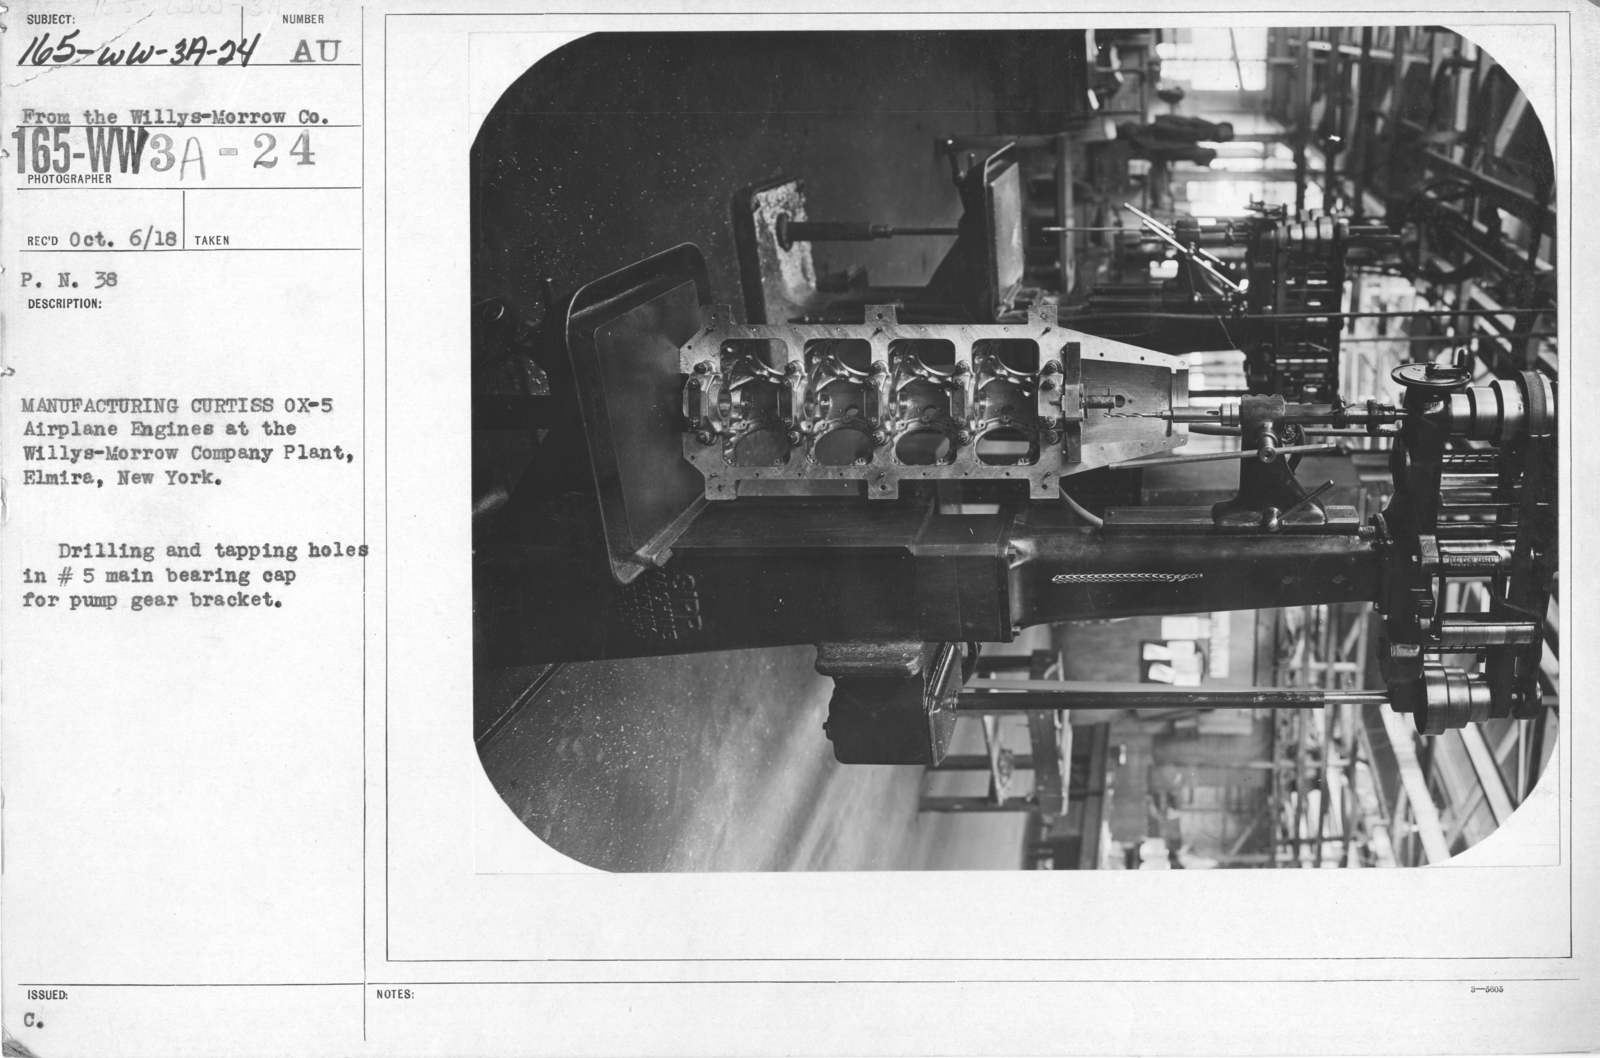 Airplanes - Engines - Manufacturing Curtiss Ox-5 airplane engines at the Willy-s Morrow Plant, Elmira, New York. Drilling and tapping holes in # 5 main bearing cap for pump gear bracket